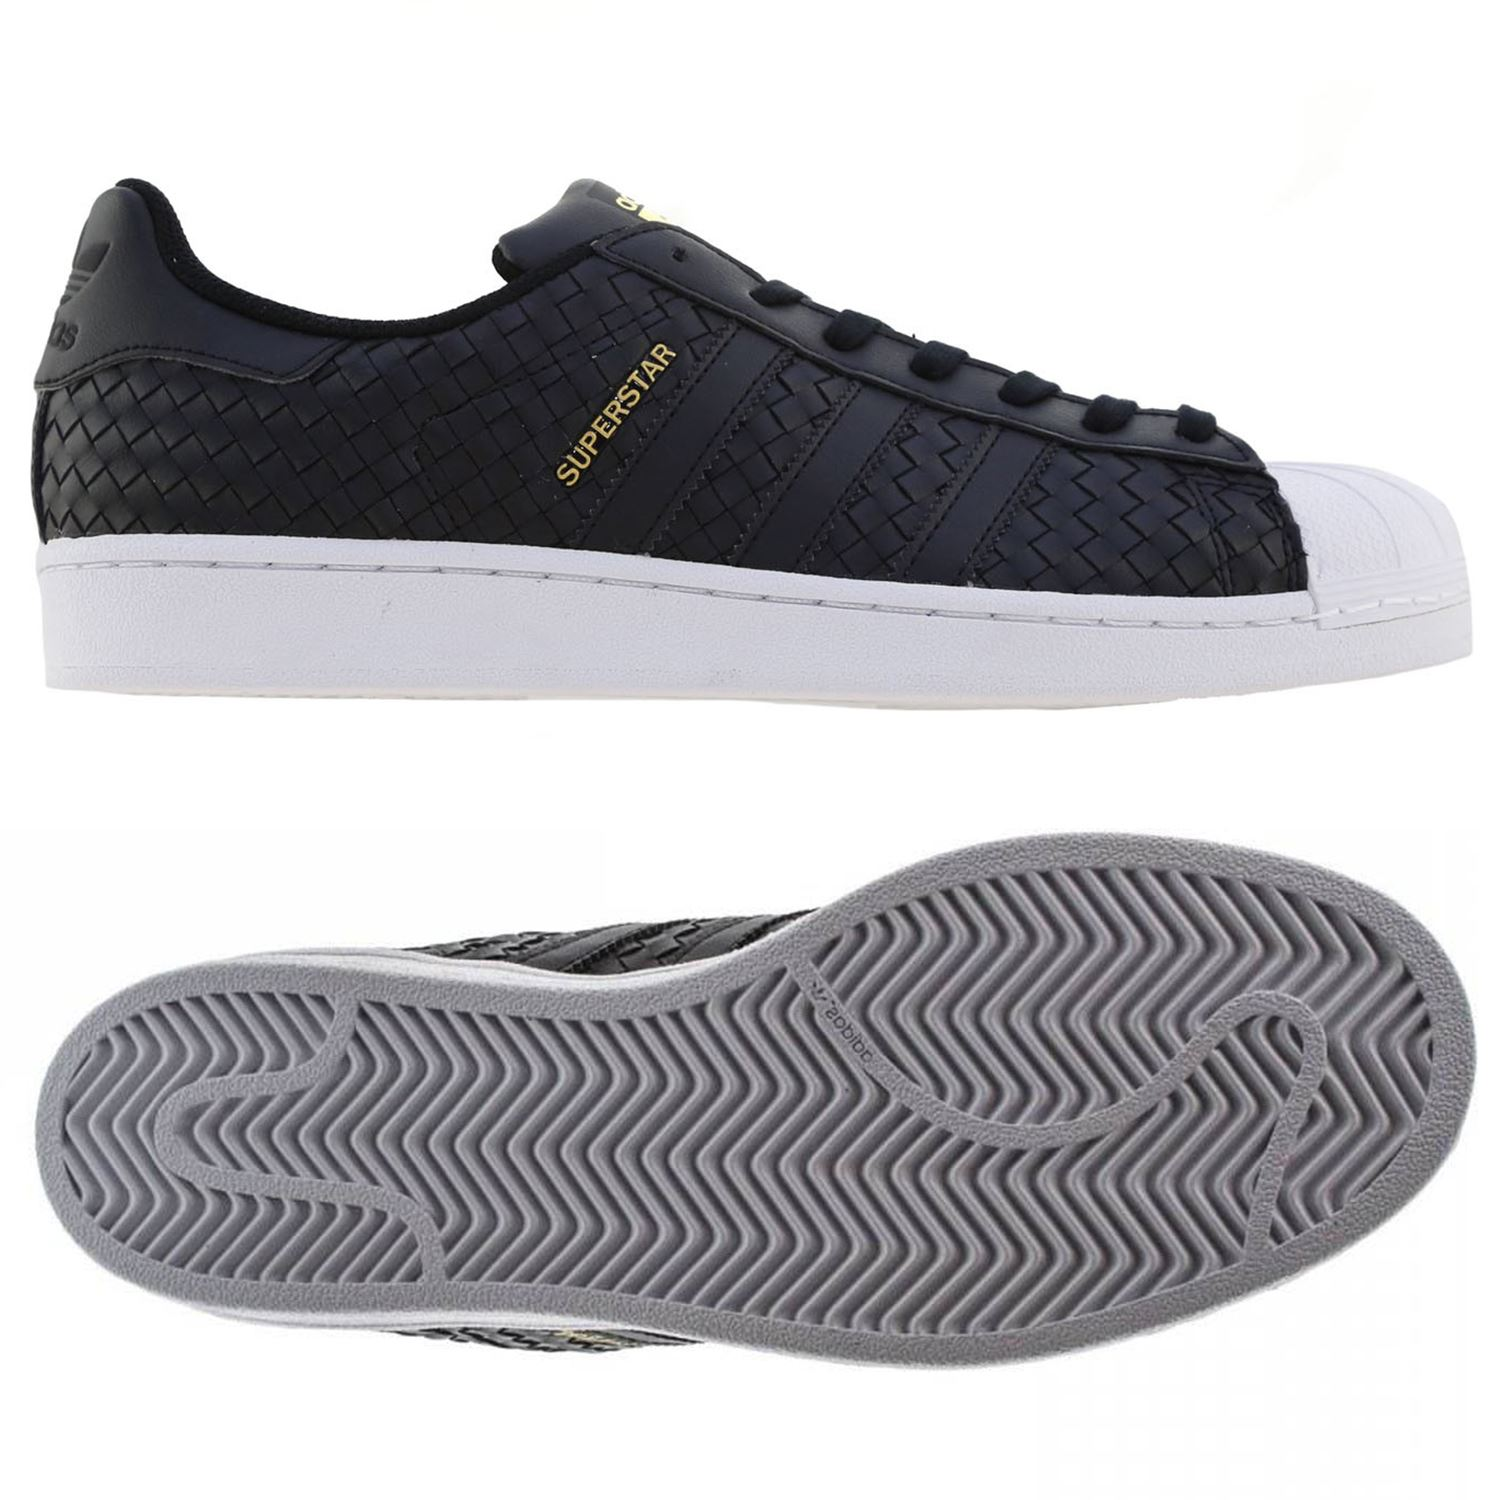 new product 7e1b2 1797e Details about adidas ORIGINALS SUPERSTAR WOVEN TRAINERS BLACK WHITE SHELL  TOE TREFOIL RETRO